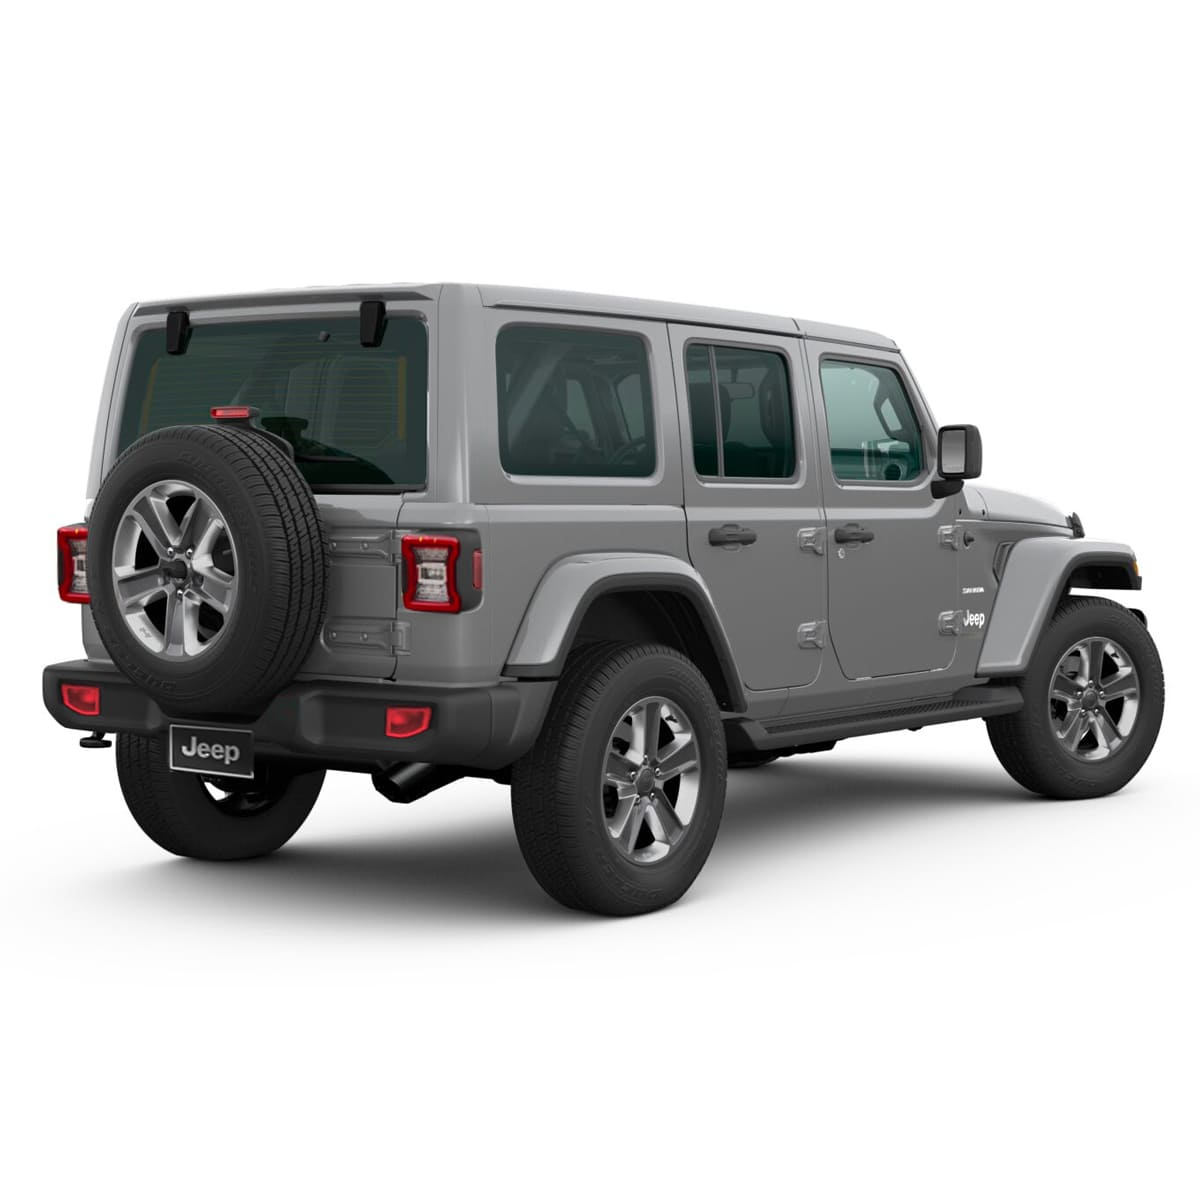 Jeep ALL NEW WRANGLER UNLIMITED SAHARA 4X4 3.6L AT STING GRAY CLEAR COAT Exterior 3